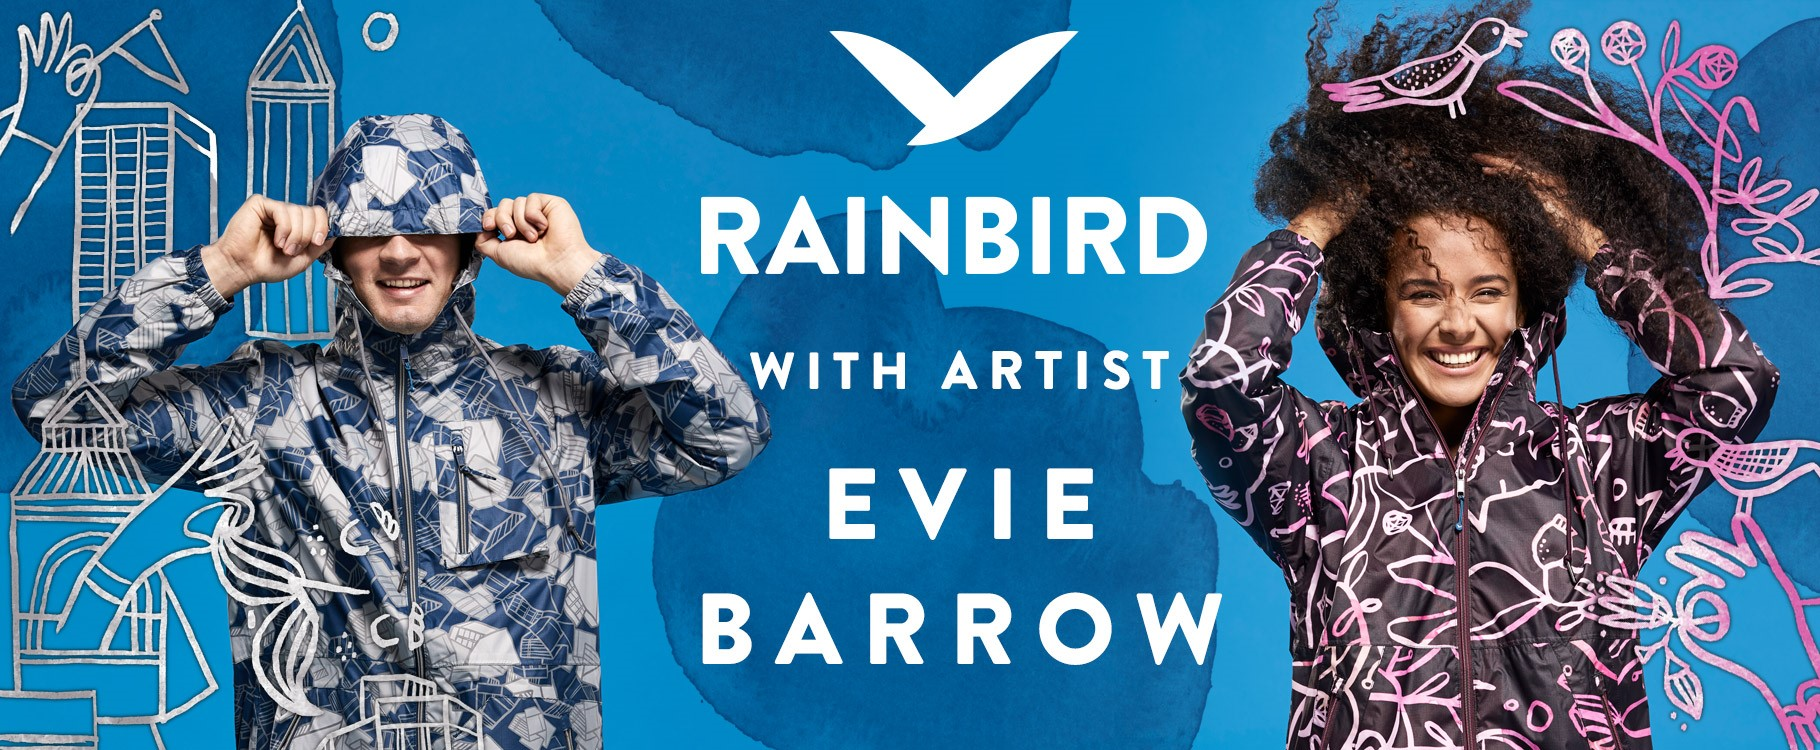 Evie Barrow Collaboration 2018